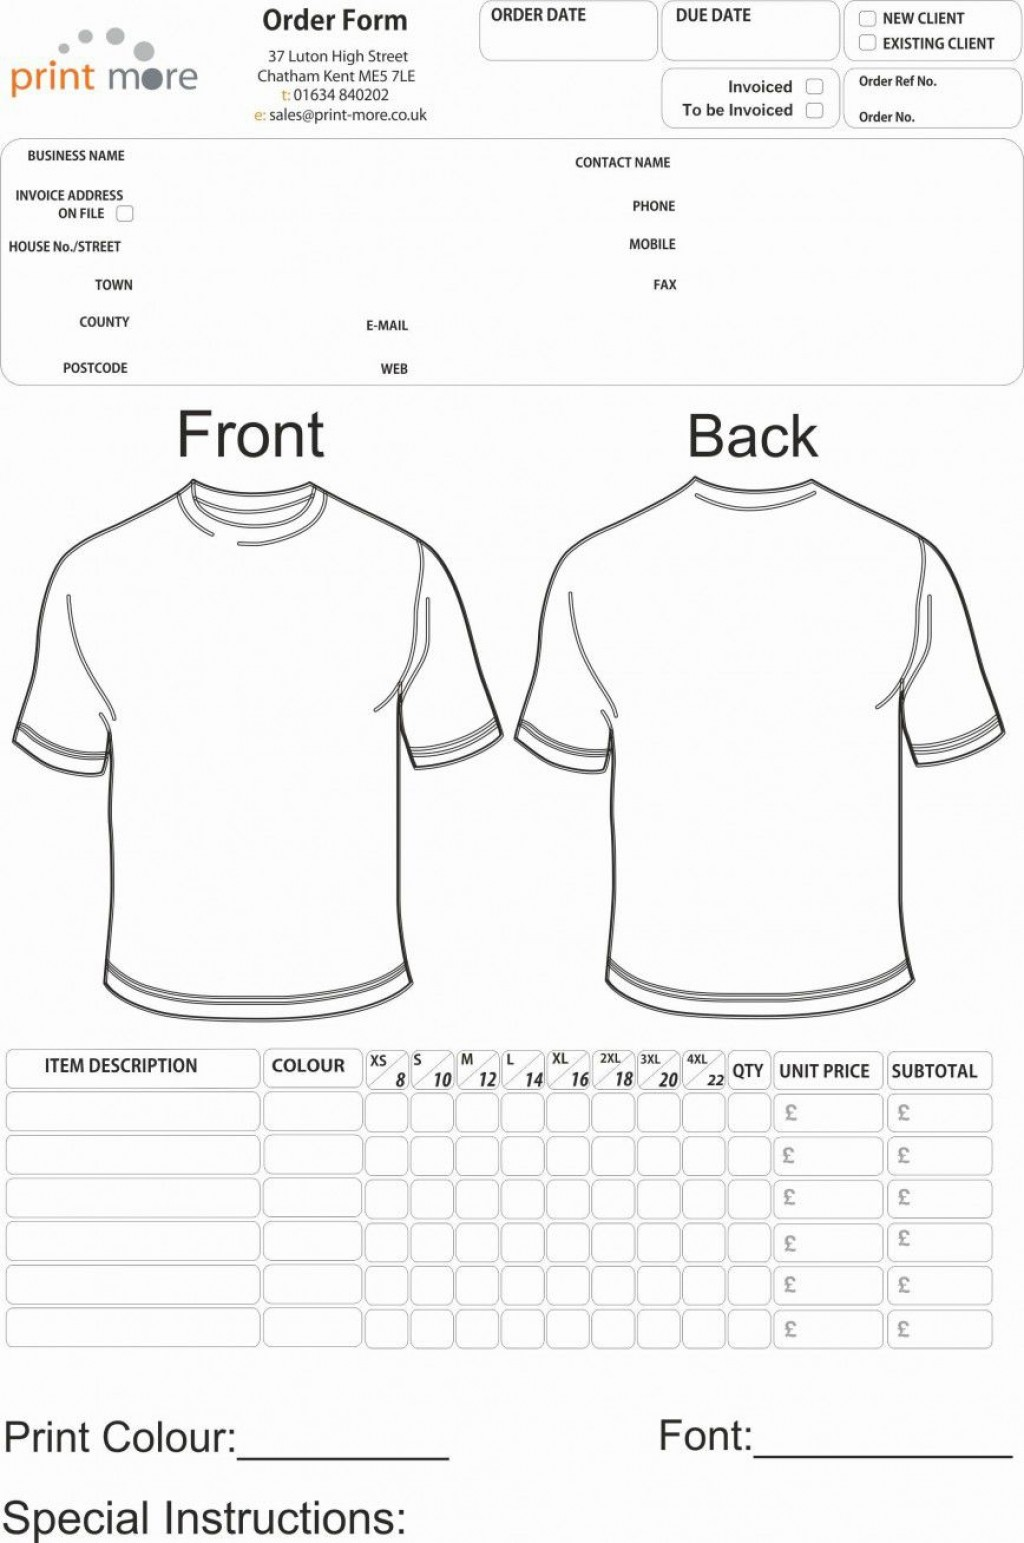 001 Unusual Shirt Order Form Template Sample  Templates T Microsoft Word Excel Download TeeLarge